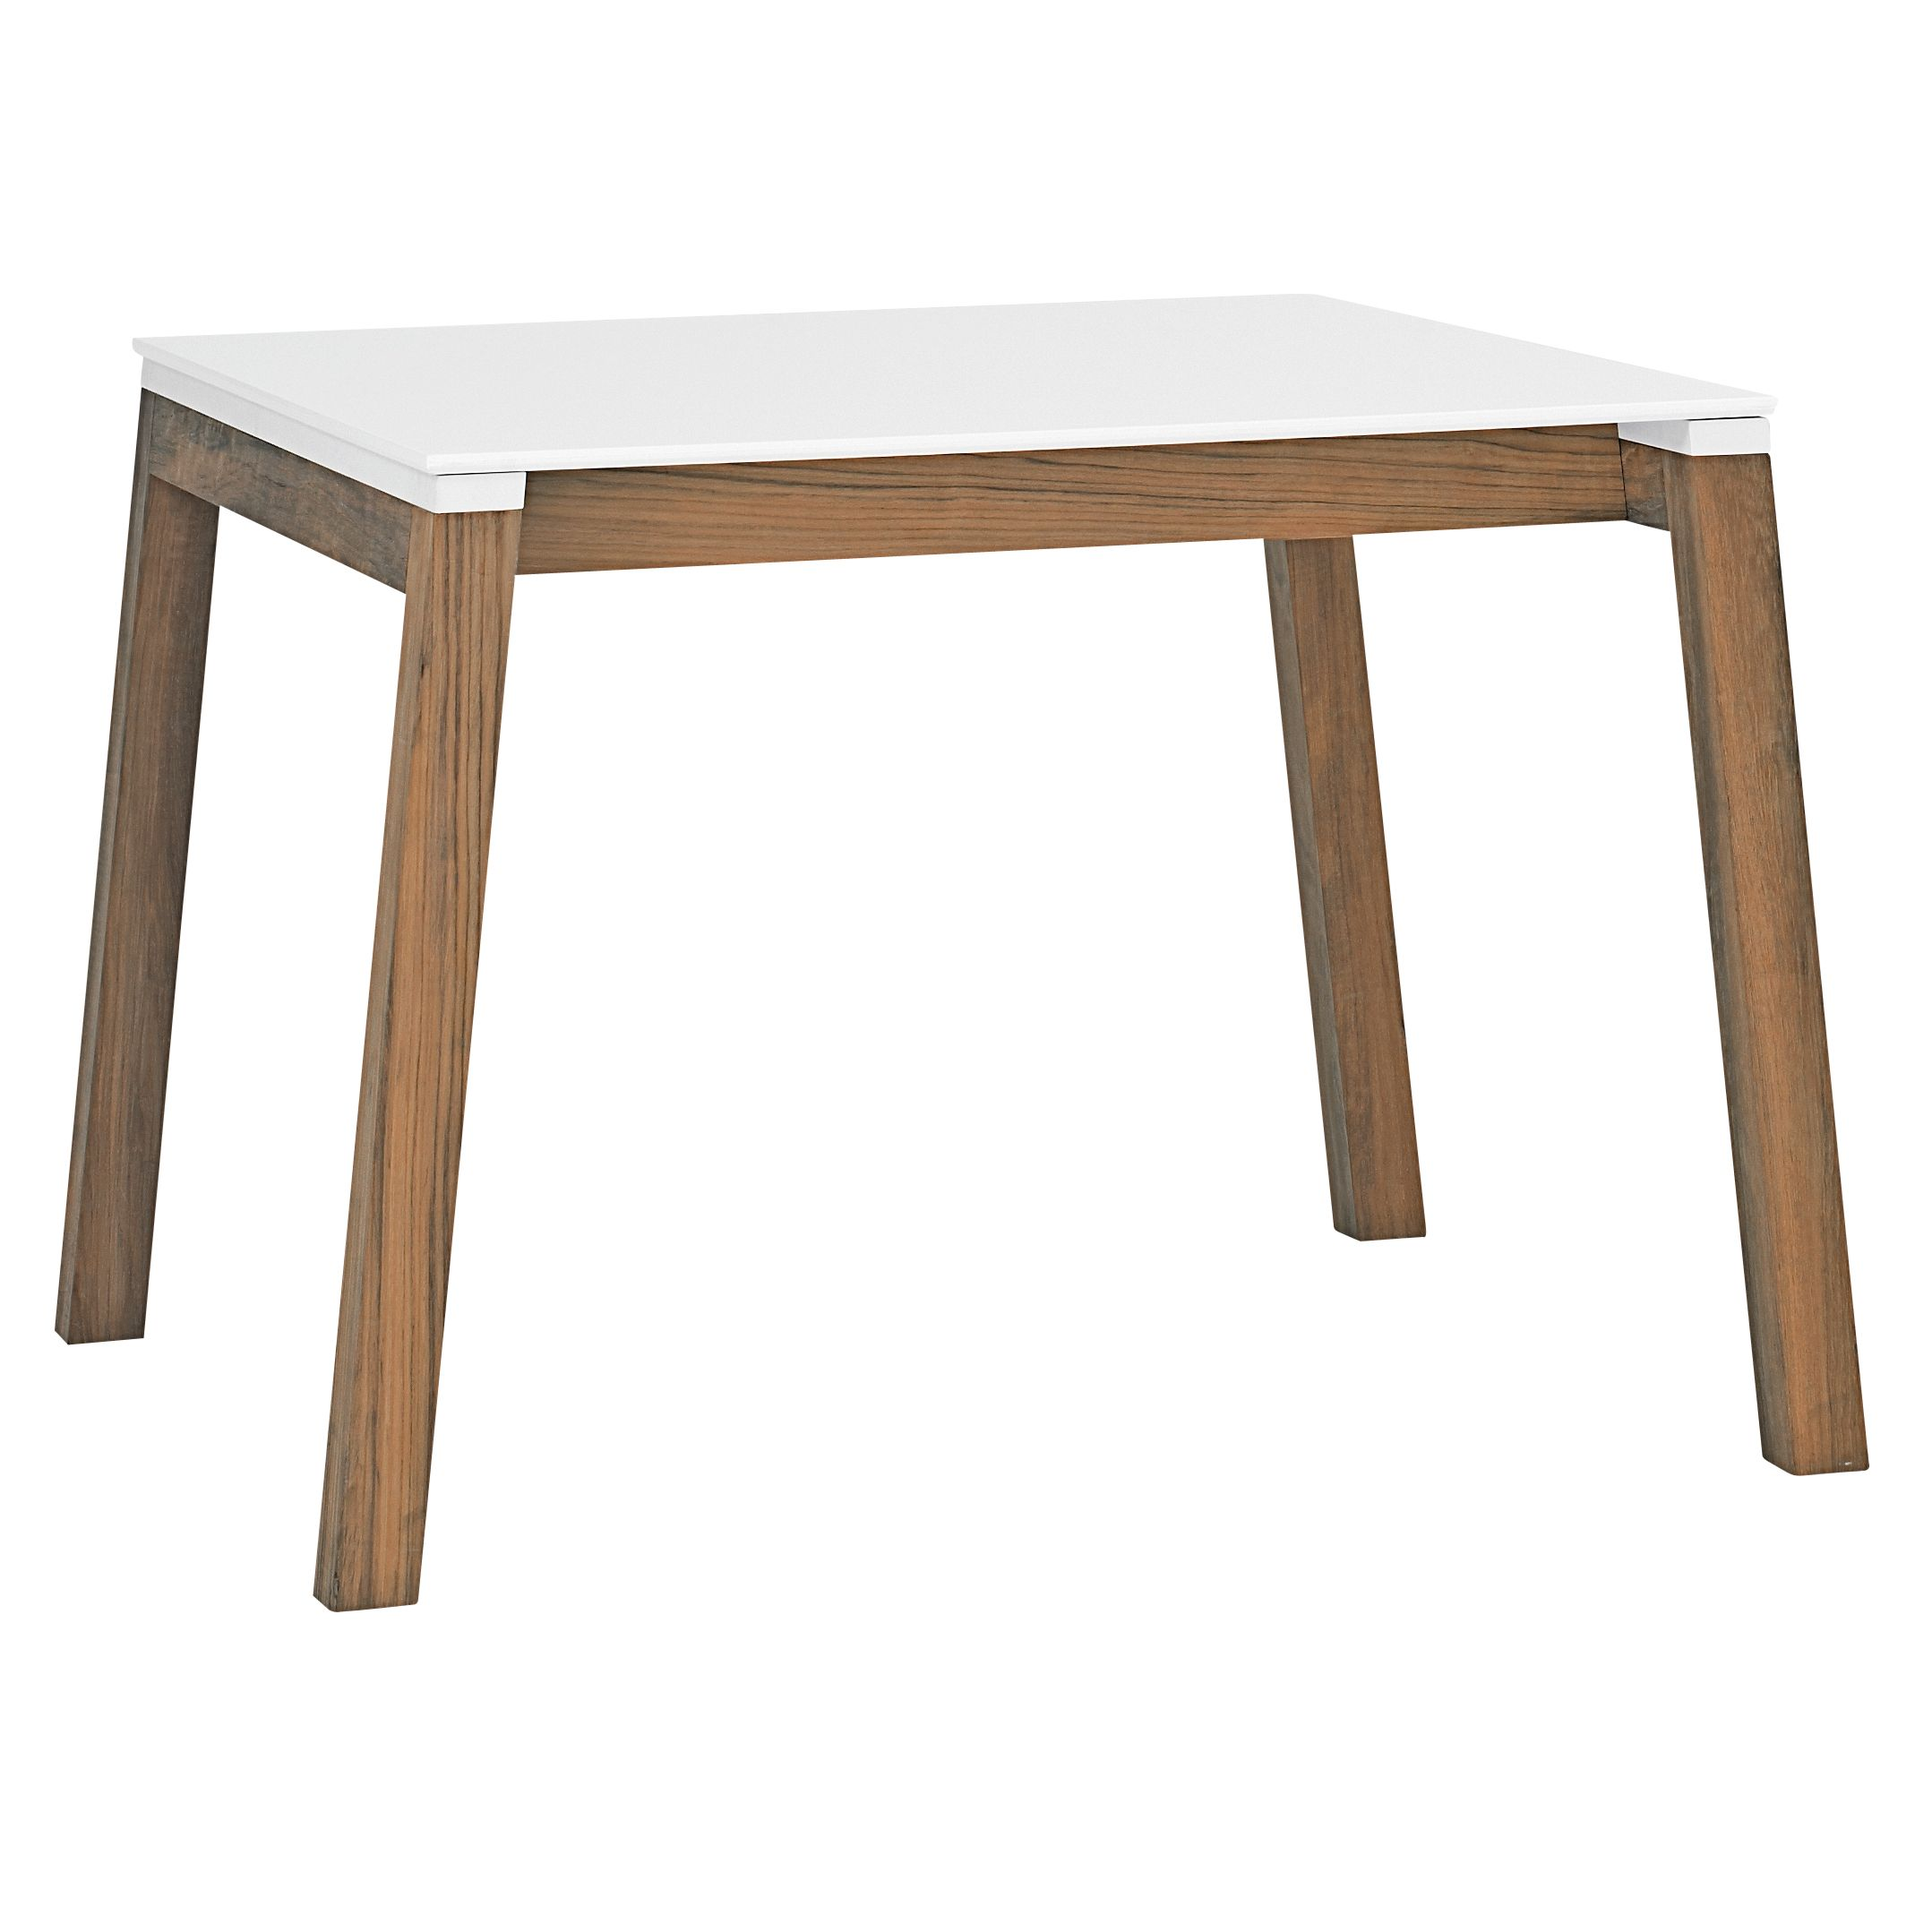 Kettler Magnus Outdoor Table, 95 x 95cm